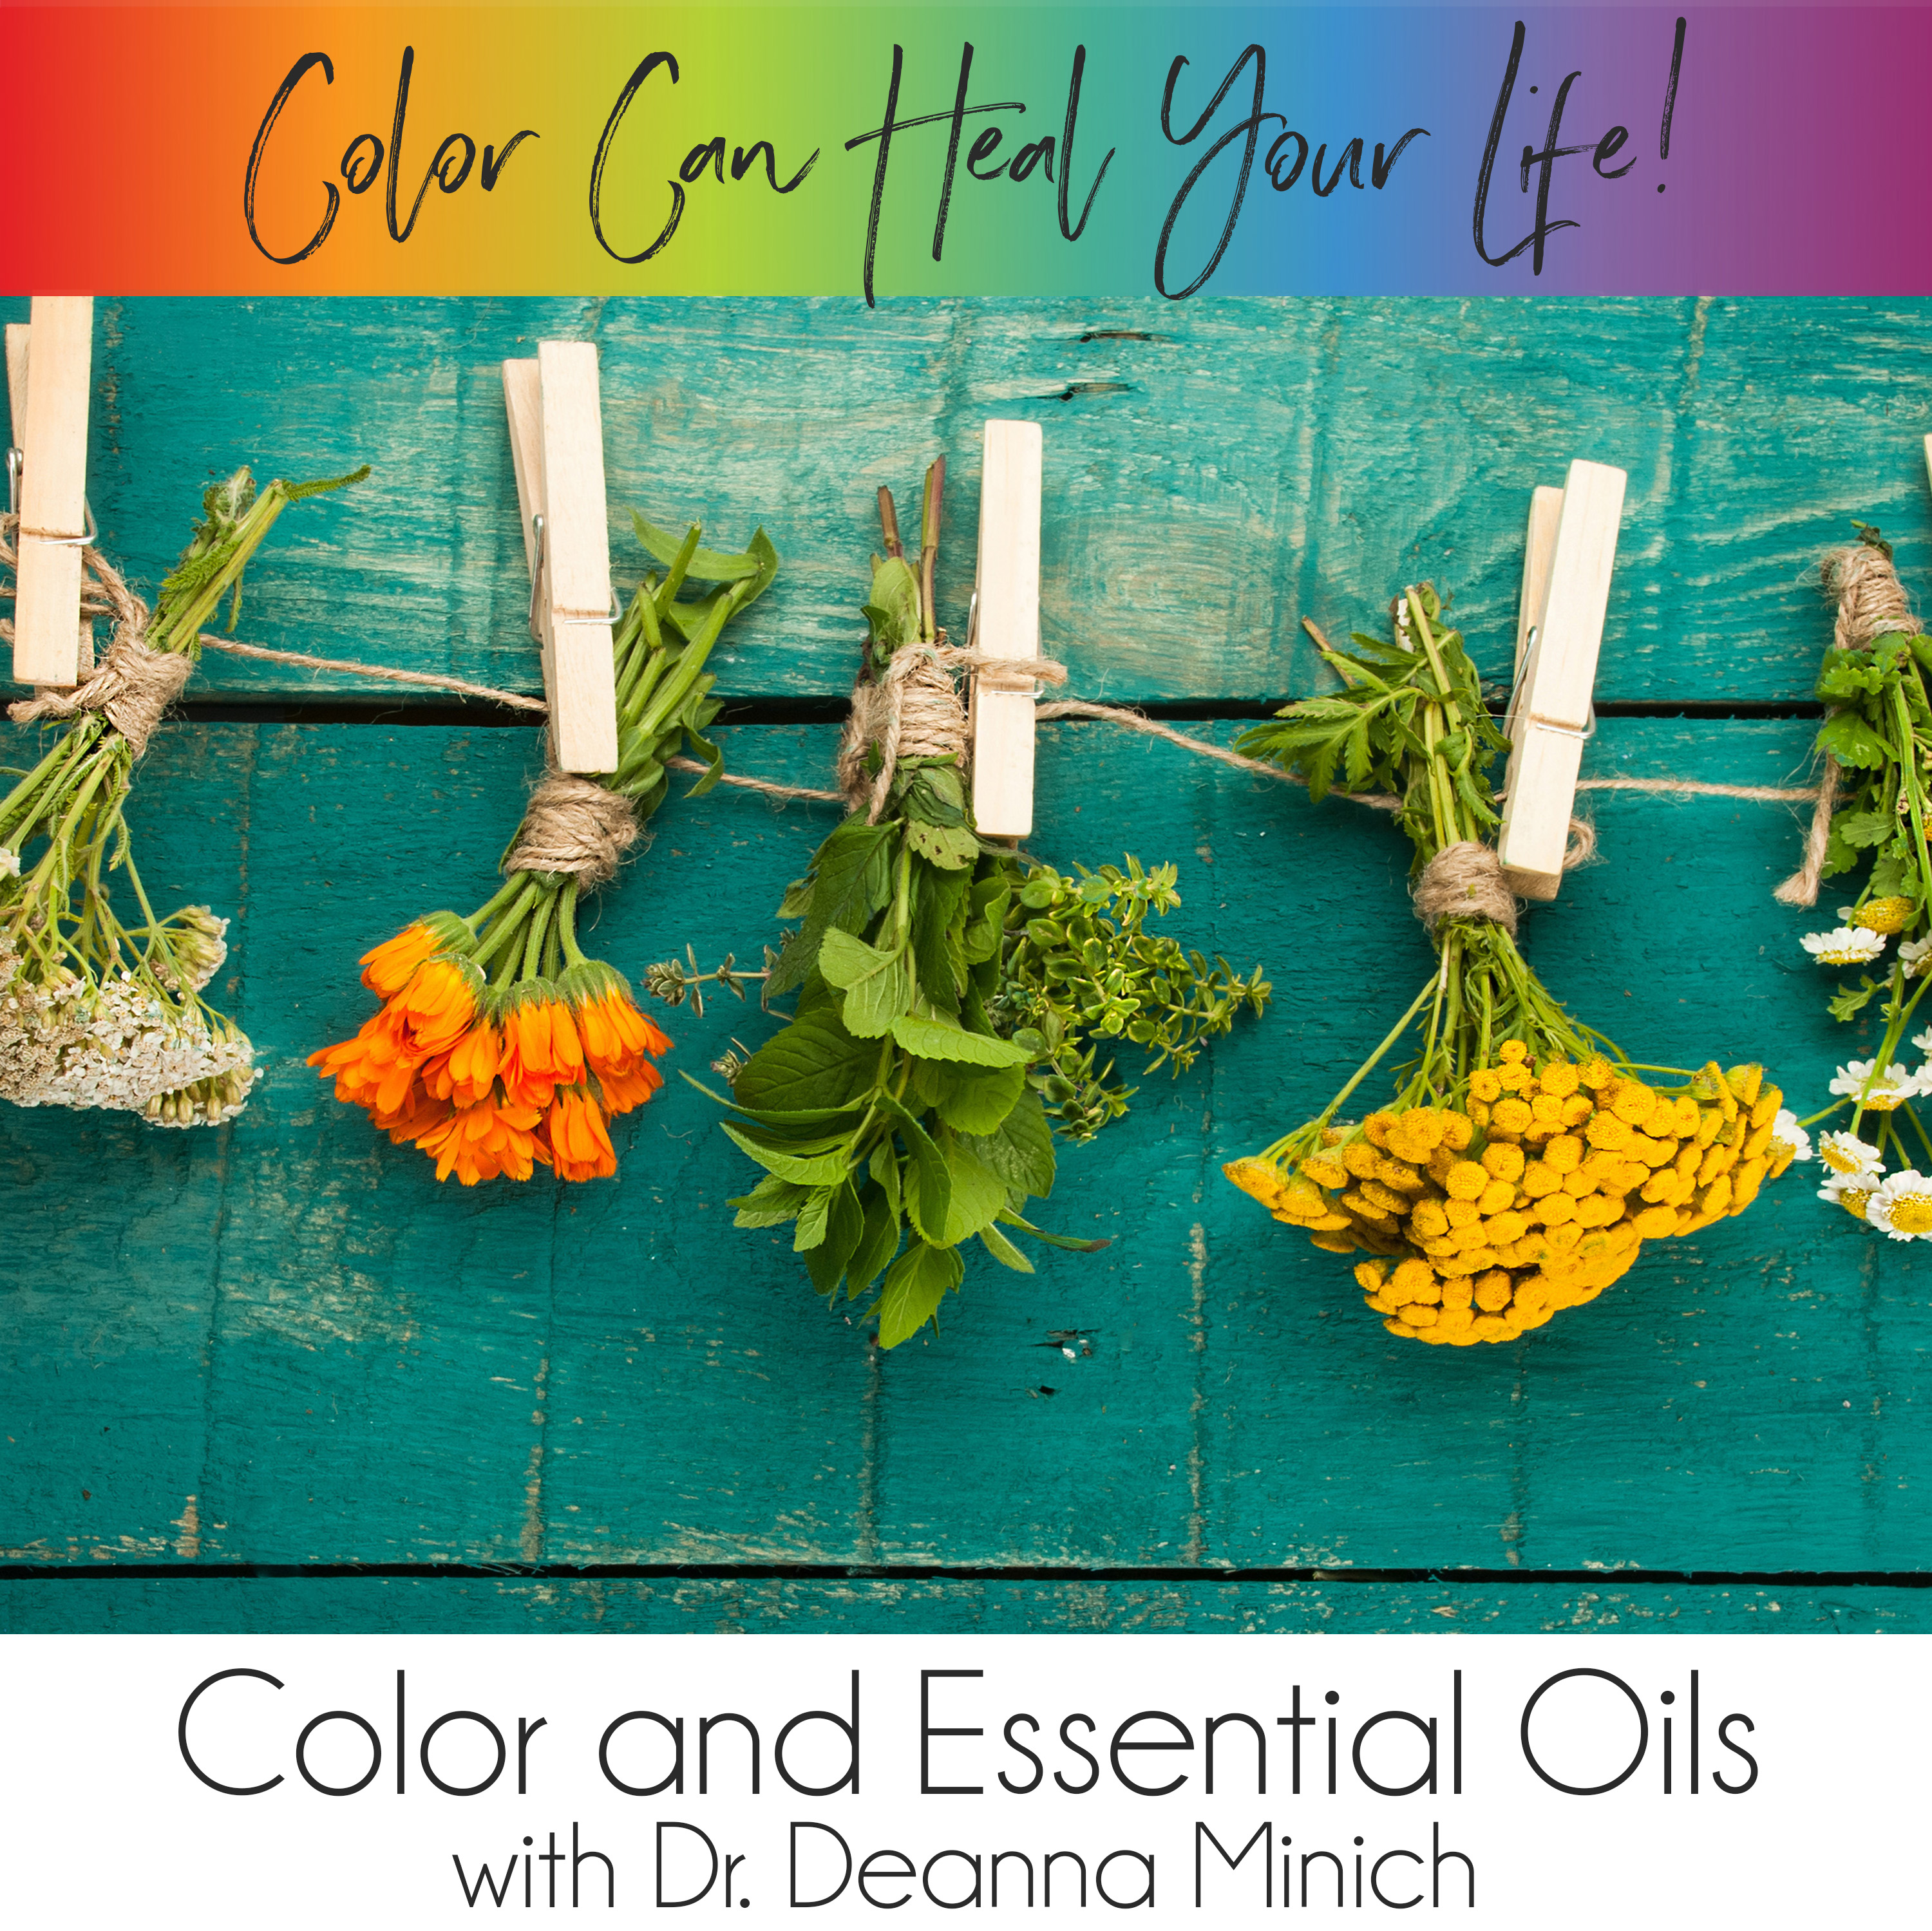 7: Color and Essential Oils